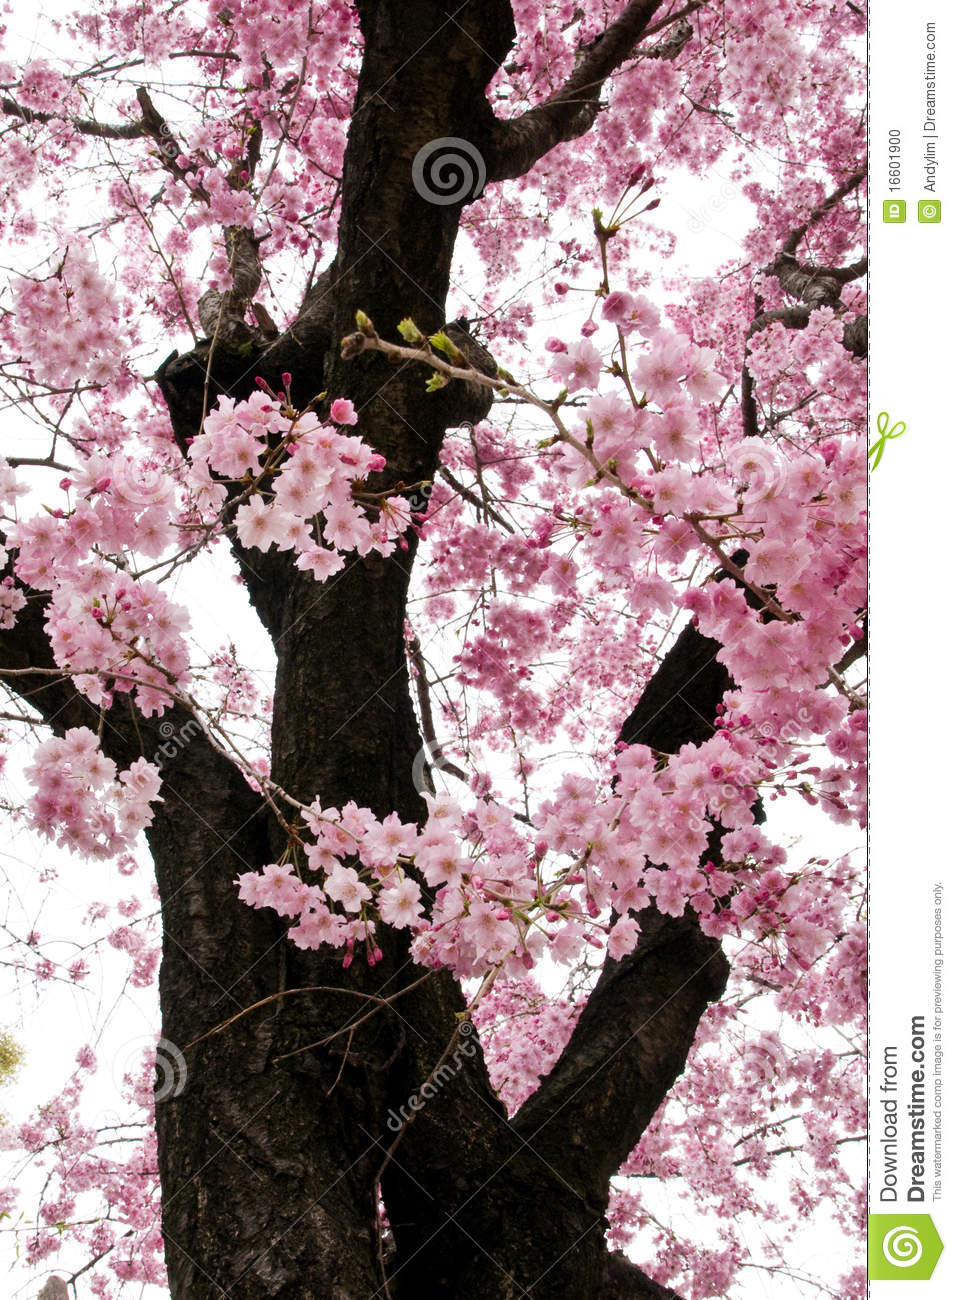 Pink Sakura Flowers In Osaka, Japan Stock Photo - Image: 16601900